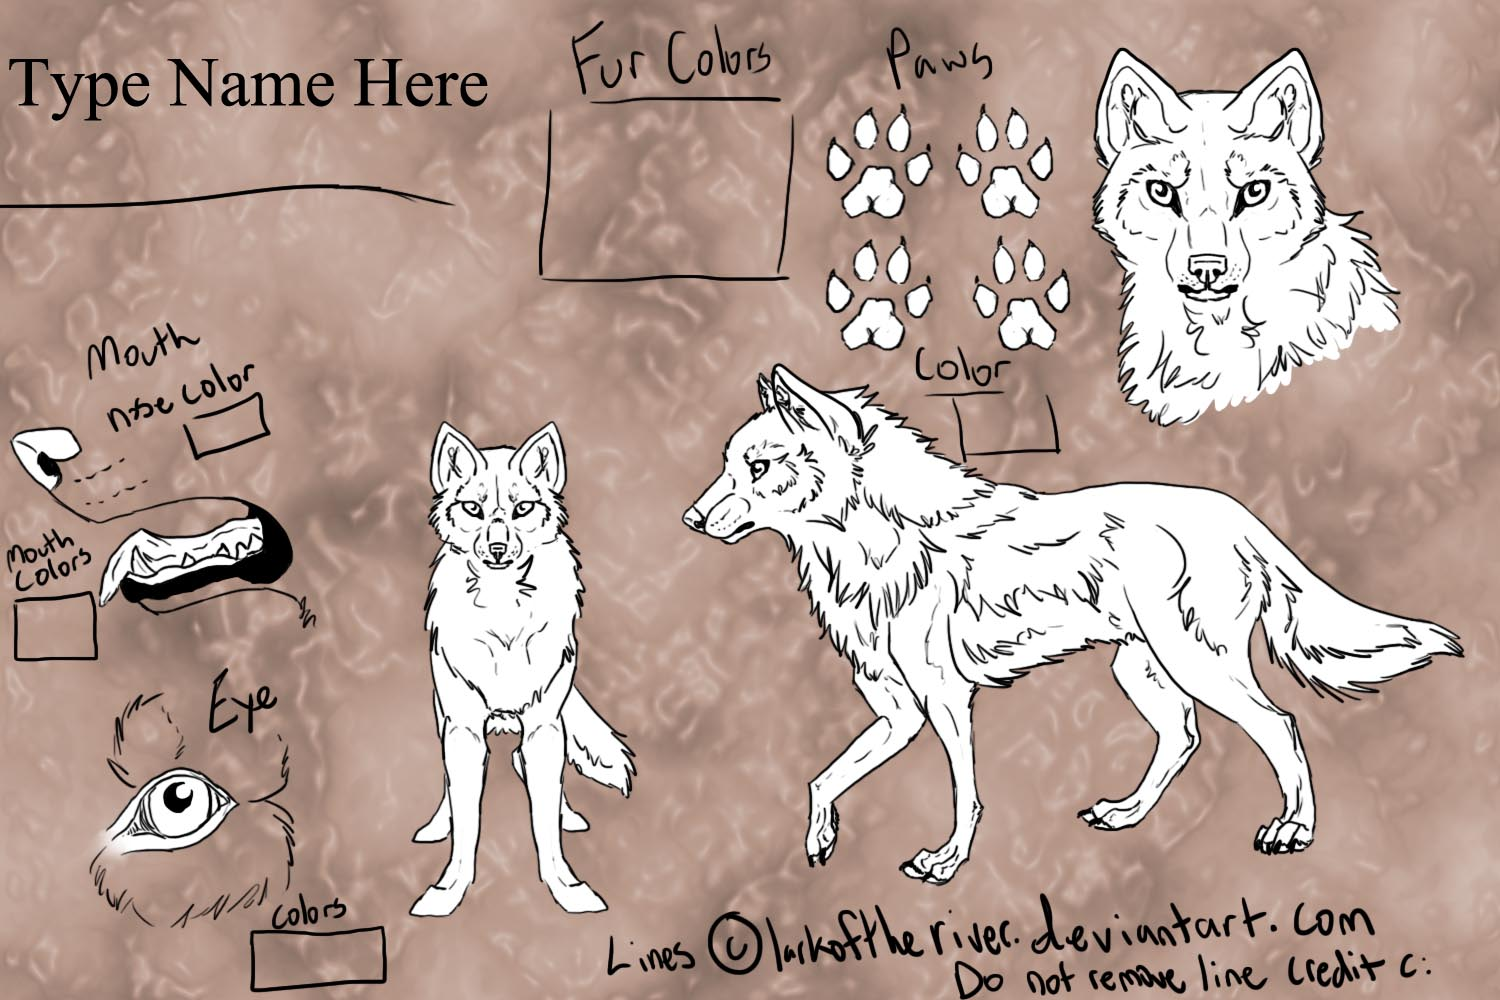 free_wolf_reference_sheet_lines_by_larkoftheriver-d8clqnp2.jpg